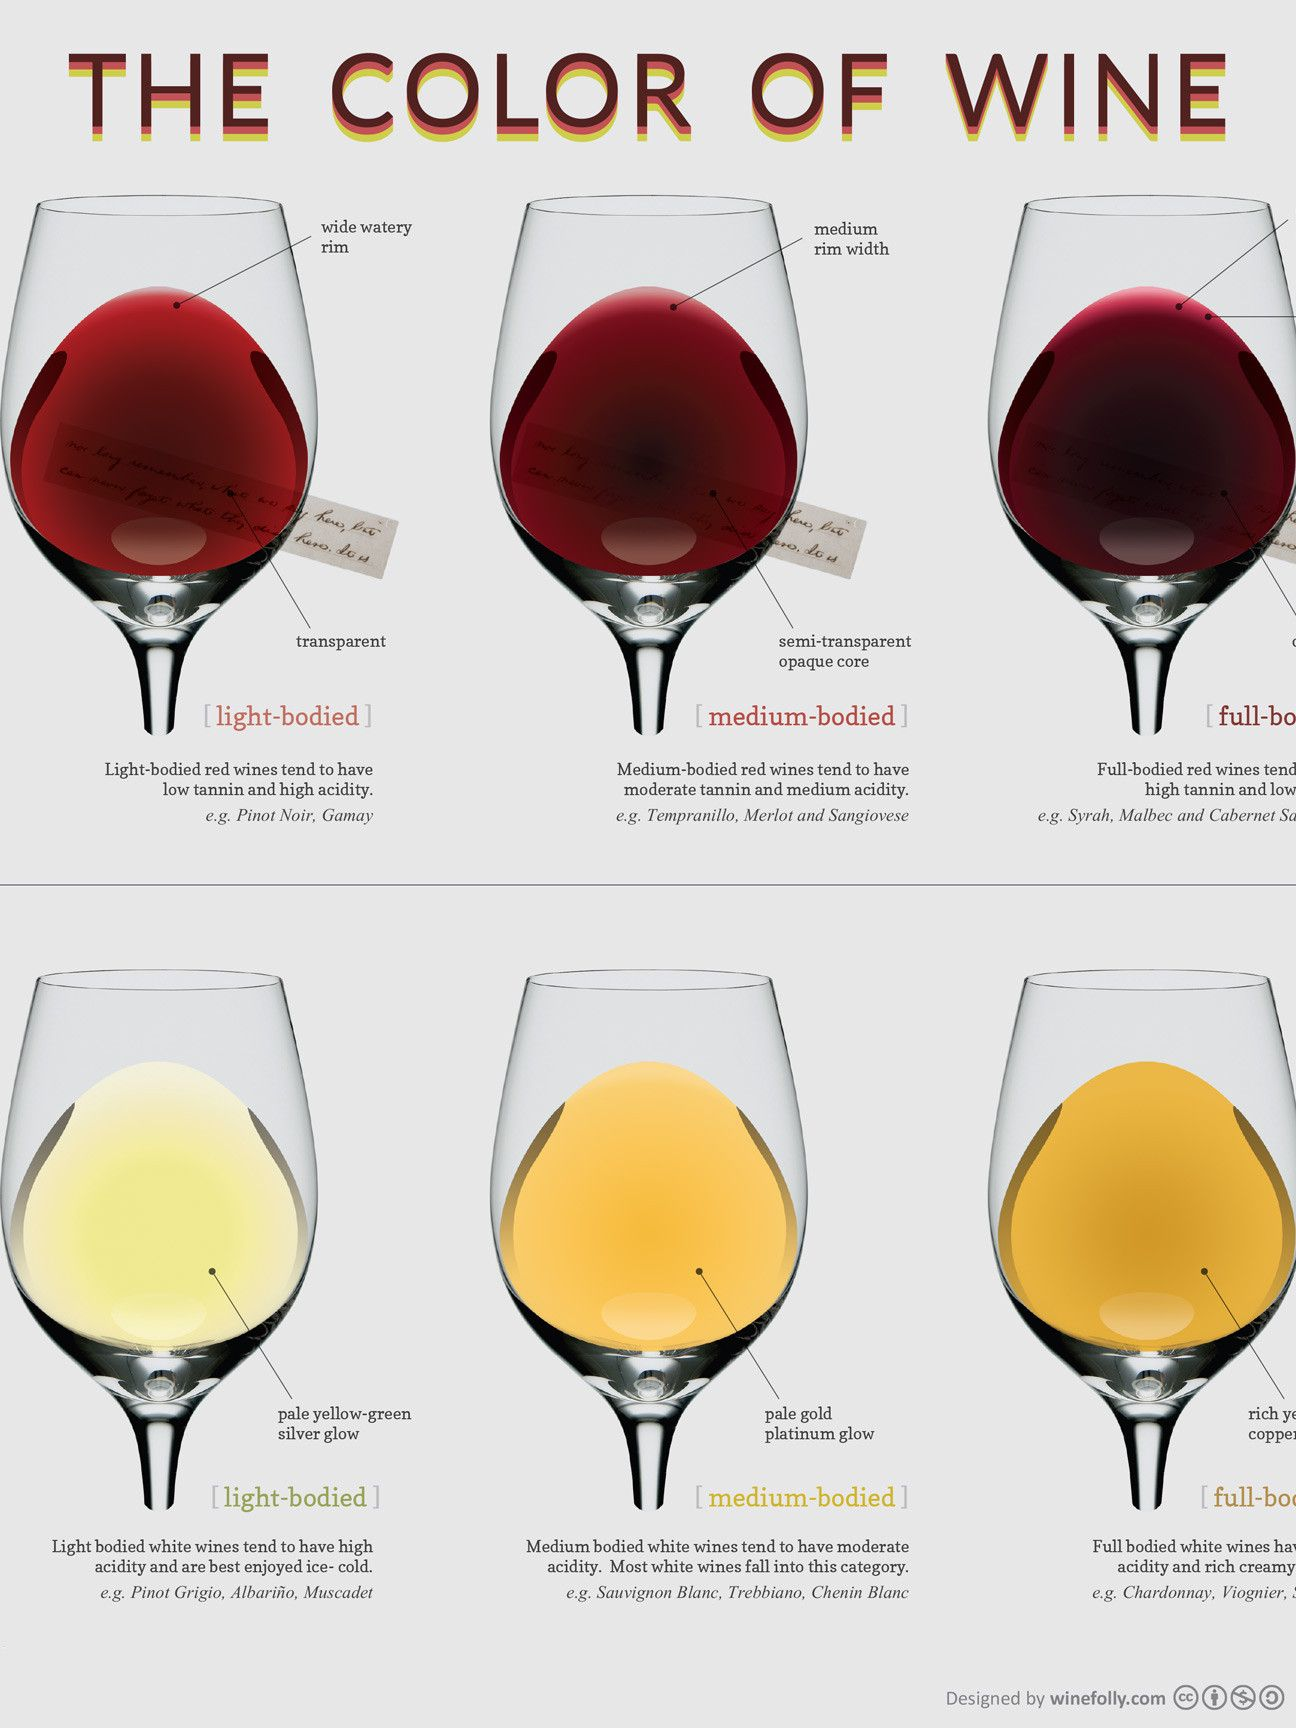 13 X 19 Poster Compare The Different Colors Of Wine With